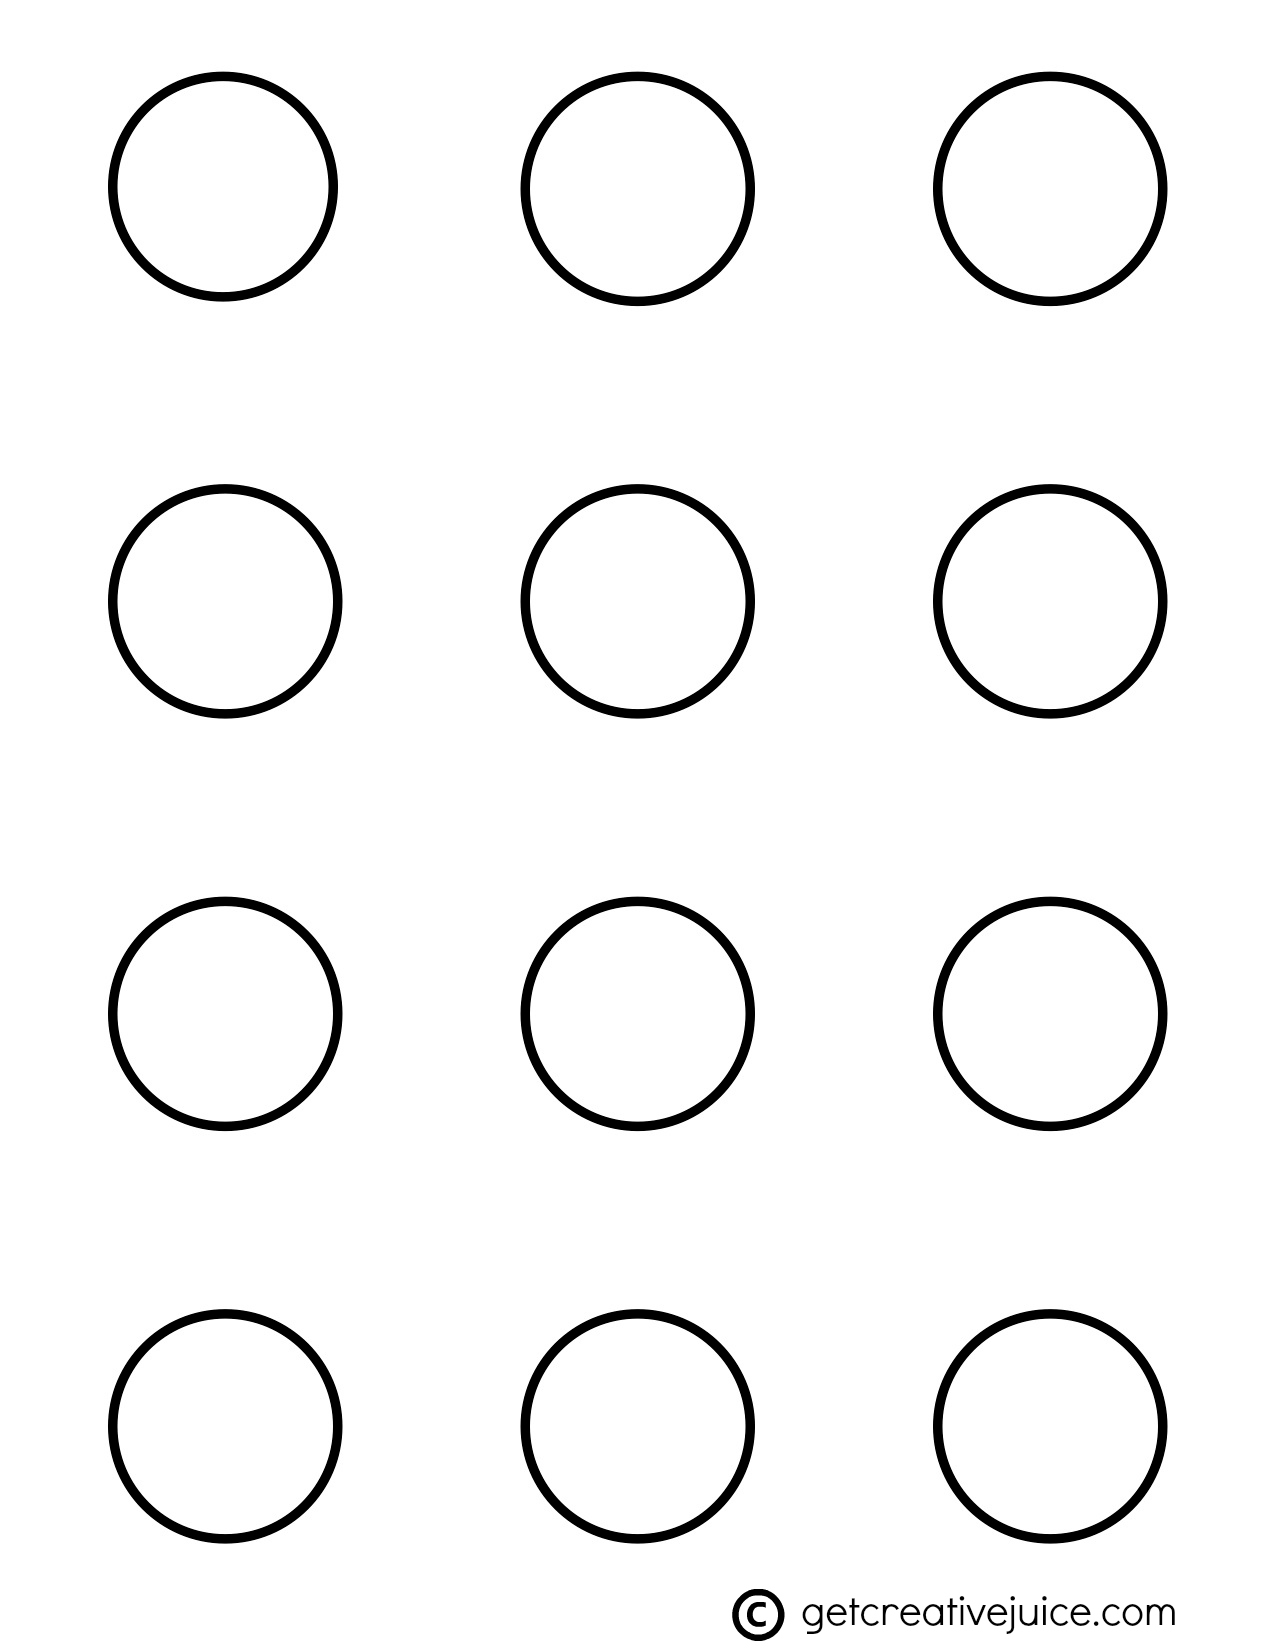 Pics Photos - Free Printable Circle Patterns Made By Me Shared With ...